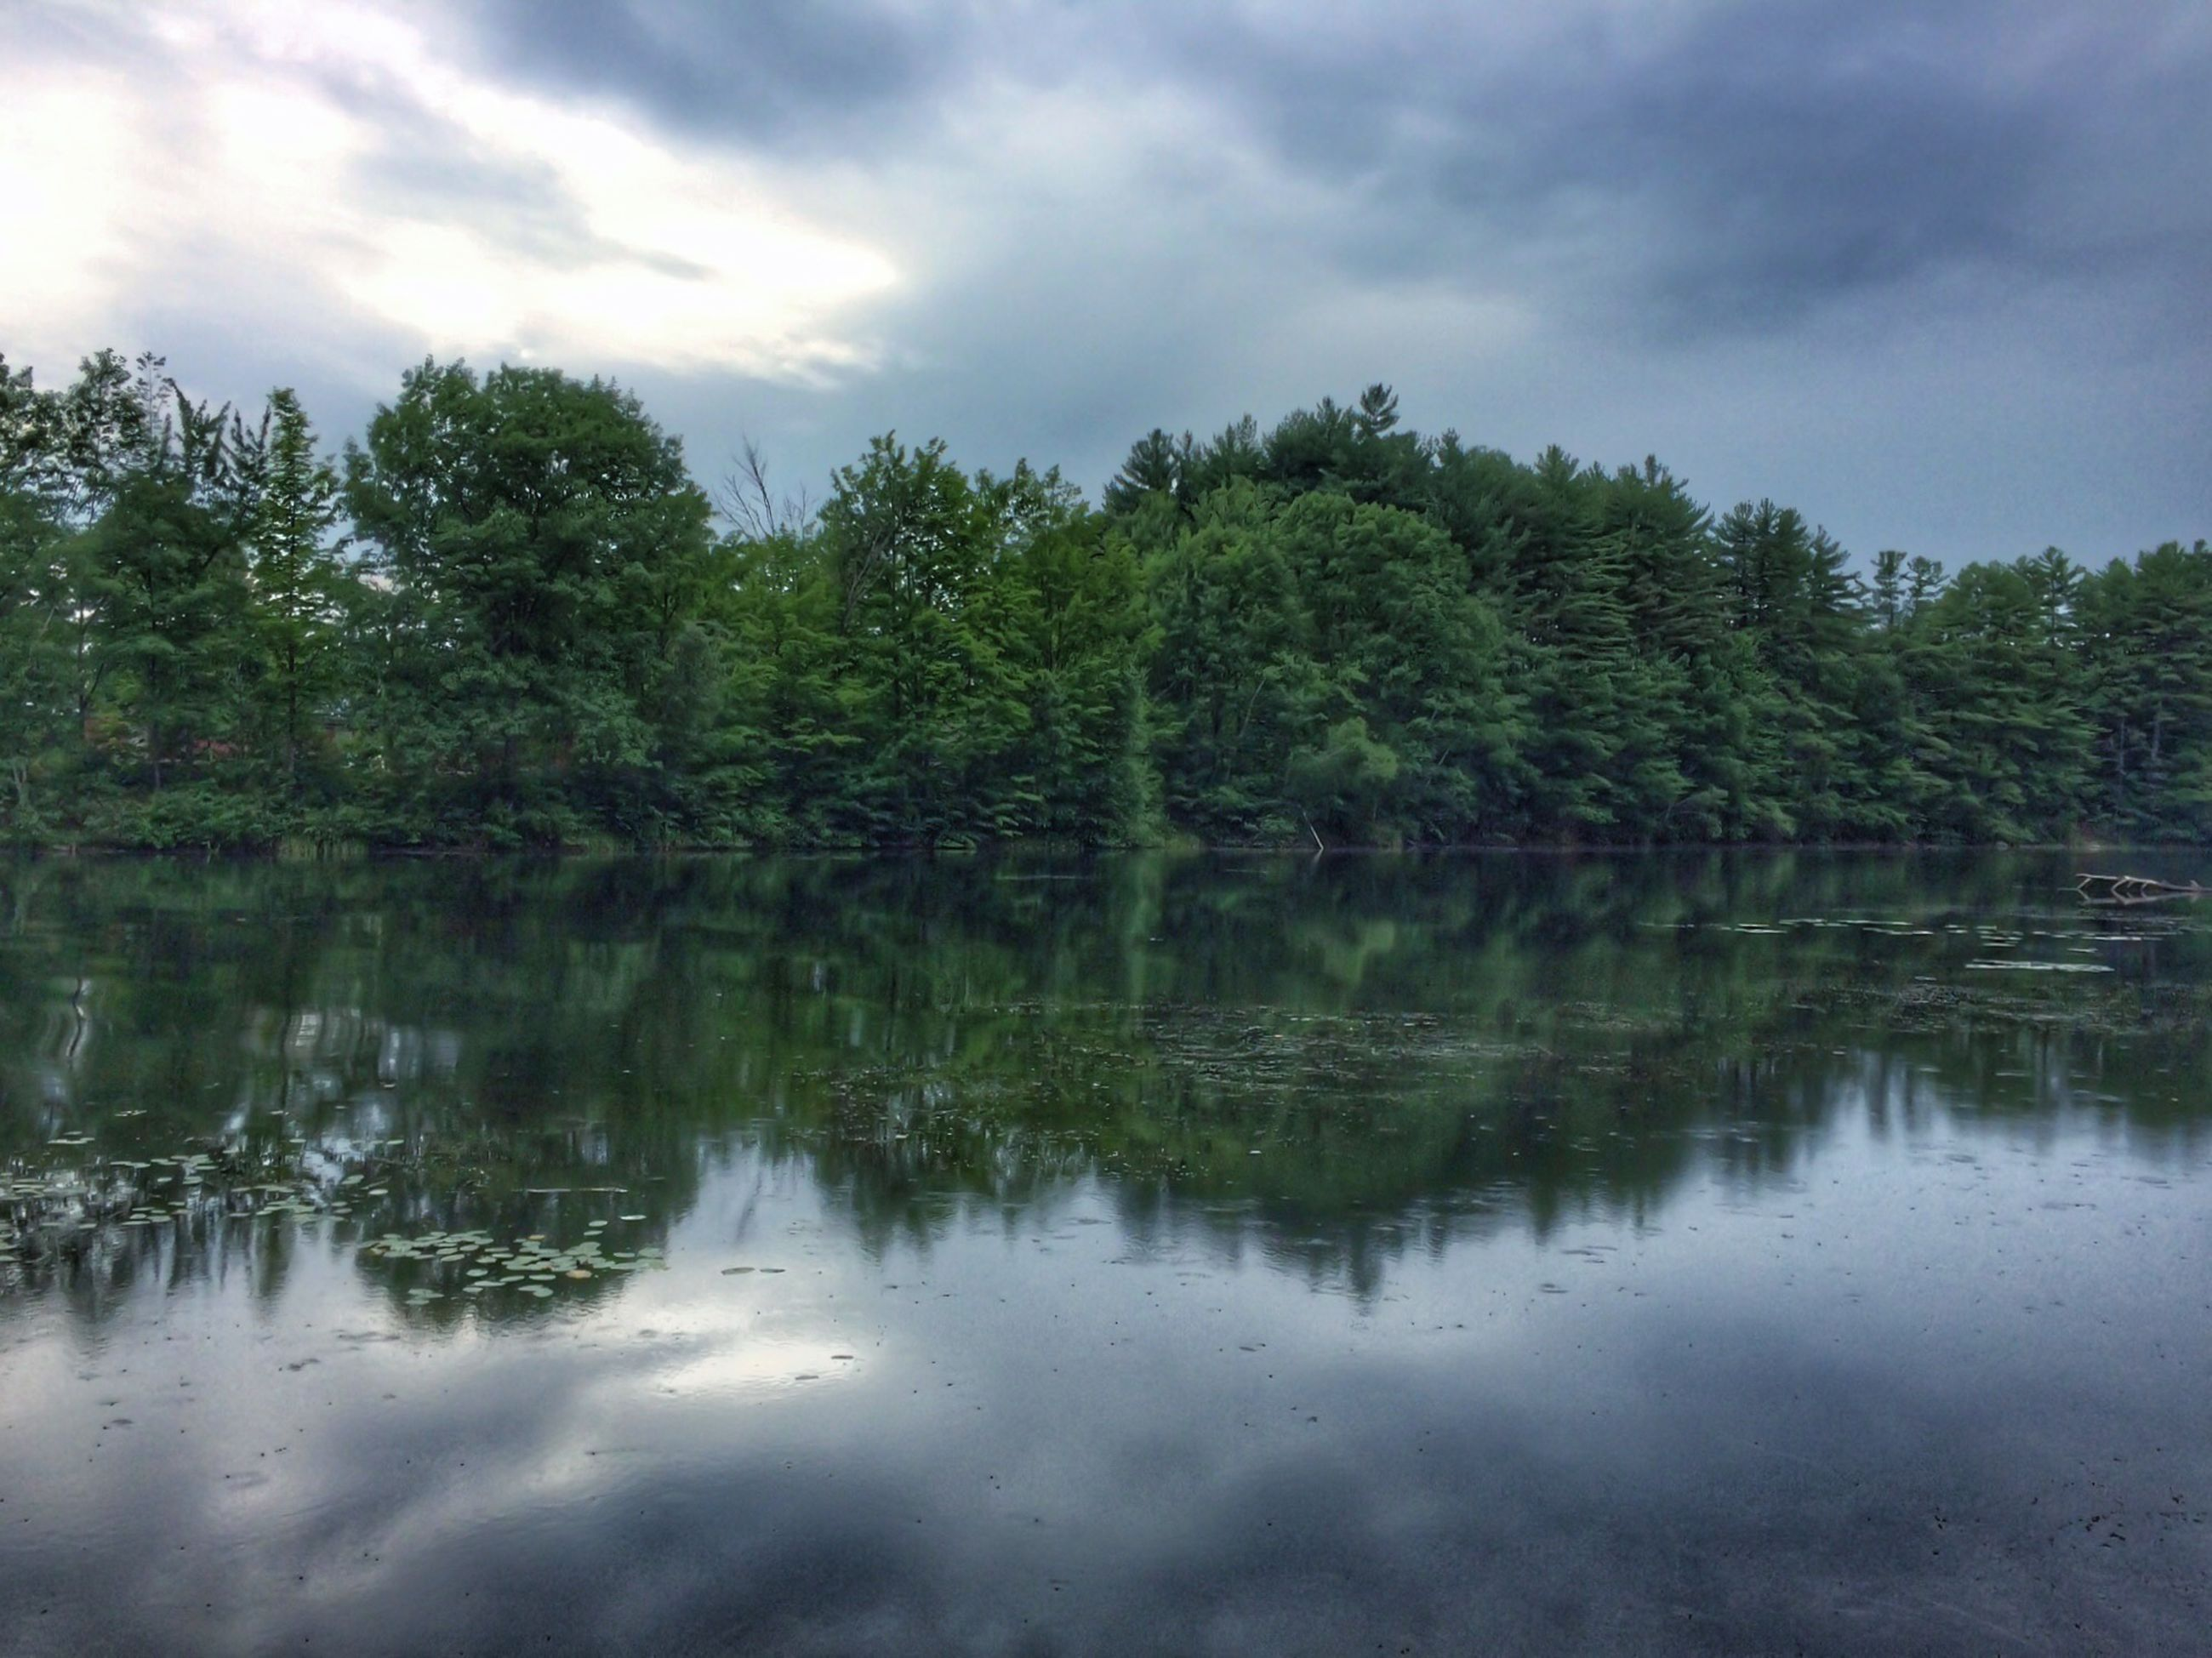 reflection, water, tree, lake, sky, tranquility, tranquil scene, waterfront, cloud - sky, scenics, beauty in nature, nature, cloudy, standing water, cloud, idyllic, calm, day, outdoors, growth